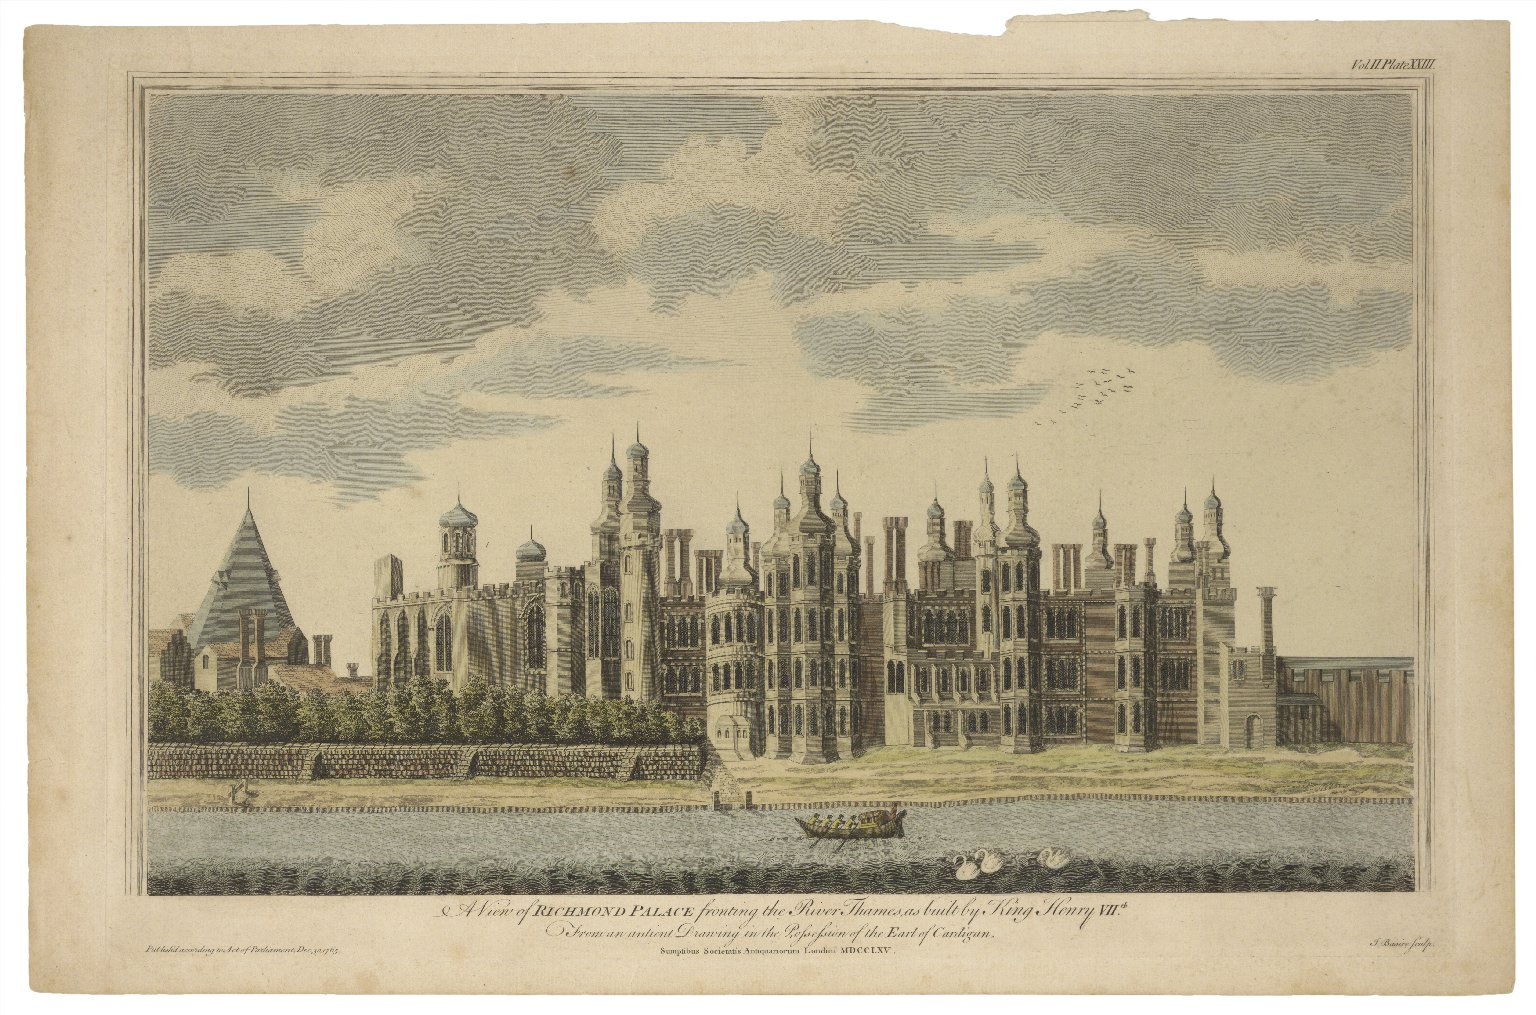 A view of Richmond Palace fronting the River Thames, as built by King Henry VIIth, from an antient drawing in the possession of the Earl of Cardigan ... [graphic] / J. Basire sculpt.